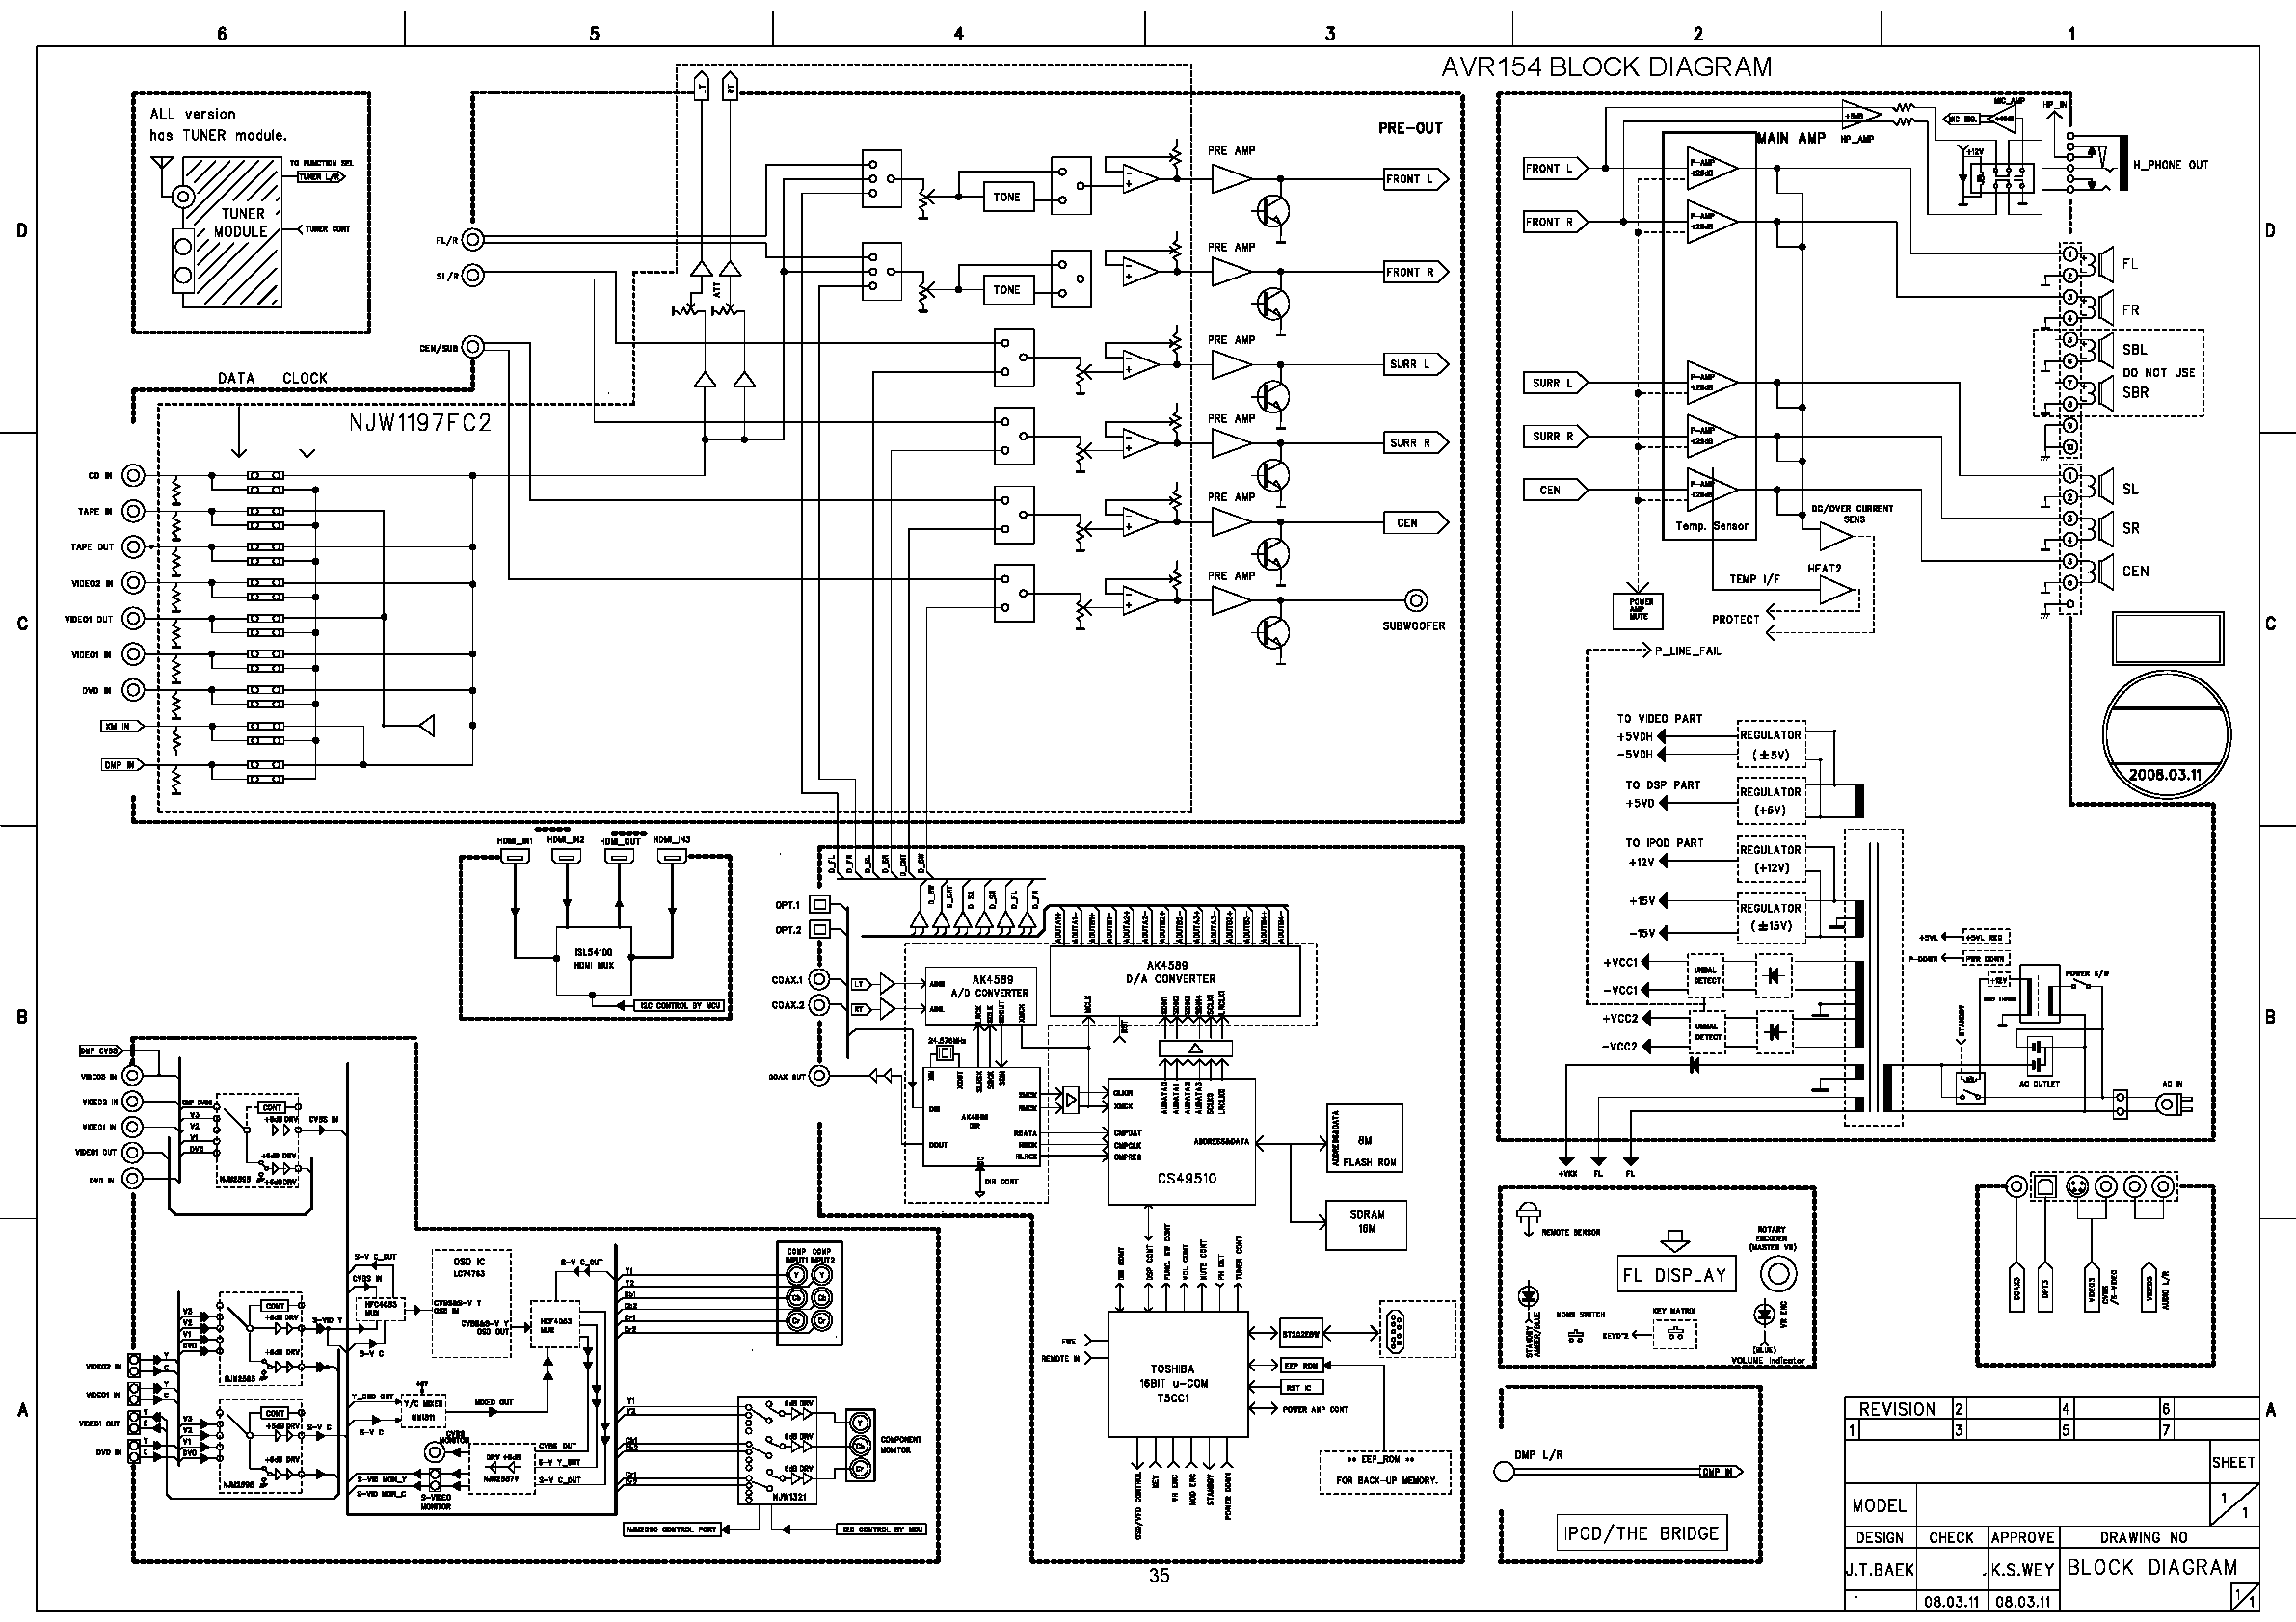 hk avr 154 block diagram wiring diagram. Black Bedroom Furniture Sets. Home Design Ideas